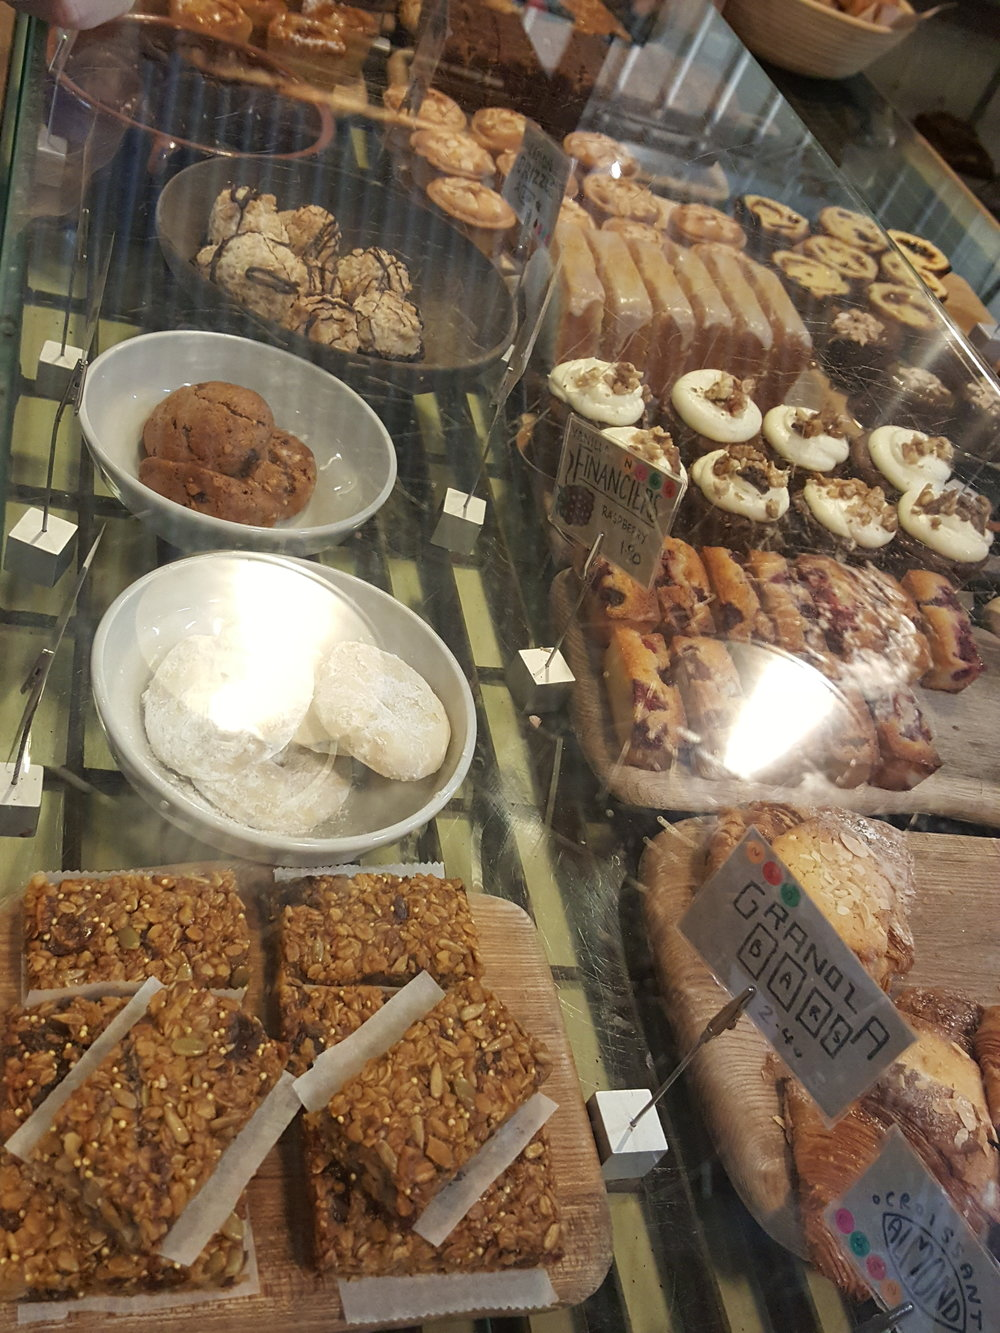 The counter of goodies at E5 Bakehouse. I forgot to take a pic of the bread, ugh!!